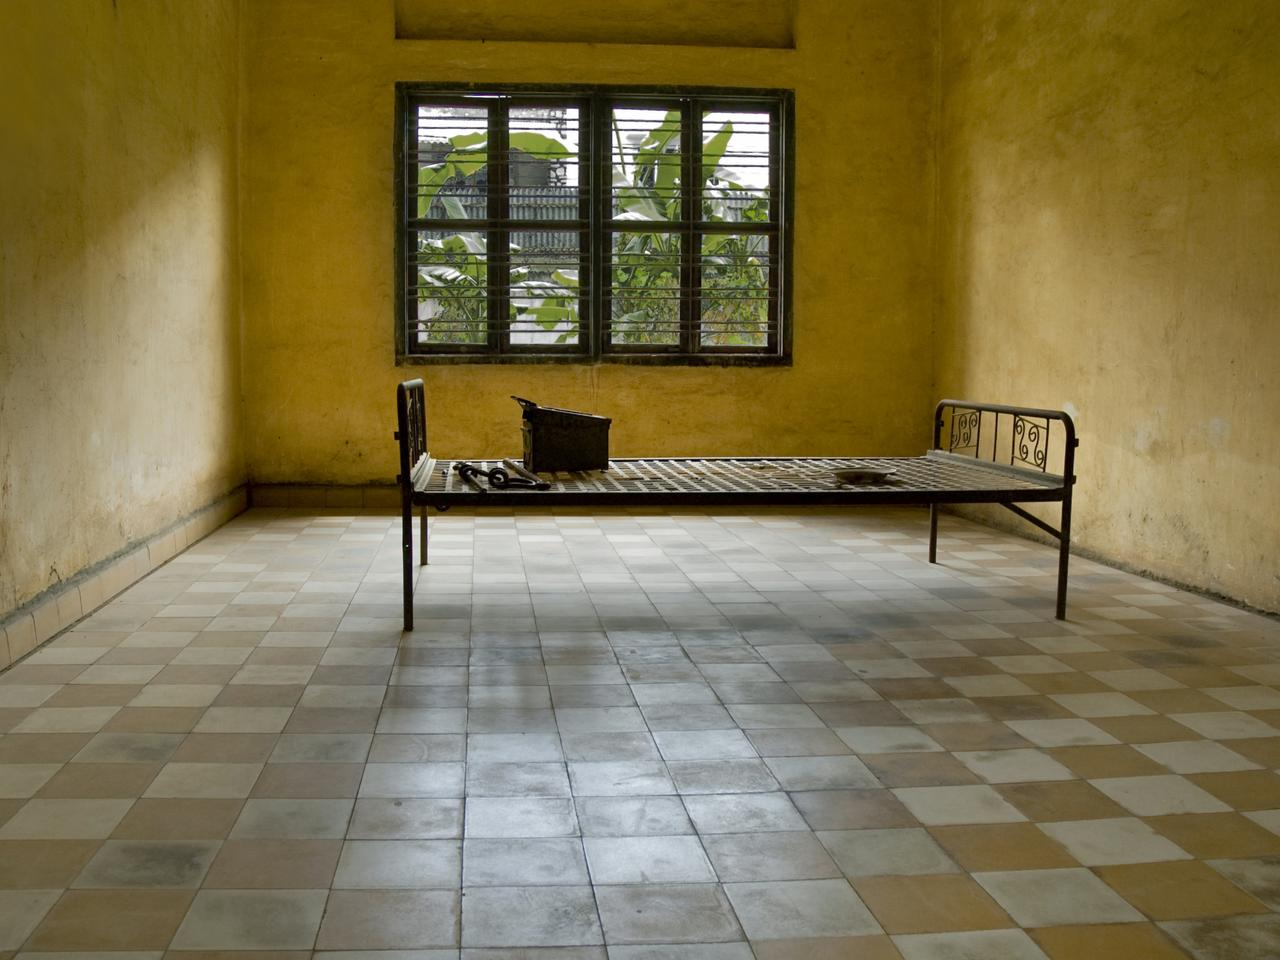 Cambodia's Tuol Sleng Genocide Museum, a former Khmer Rouge detention centre where thousands were tortured.